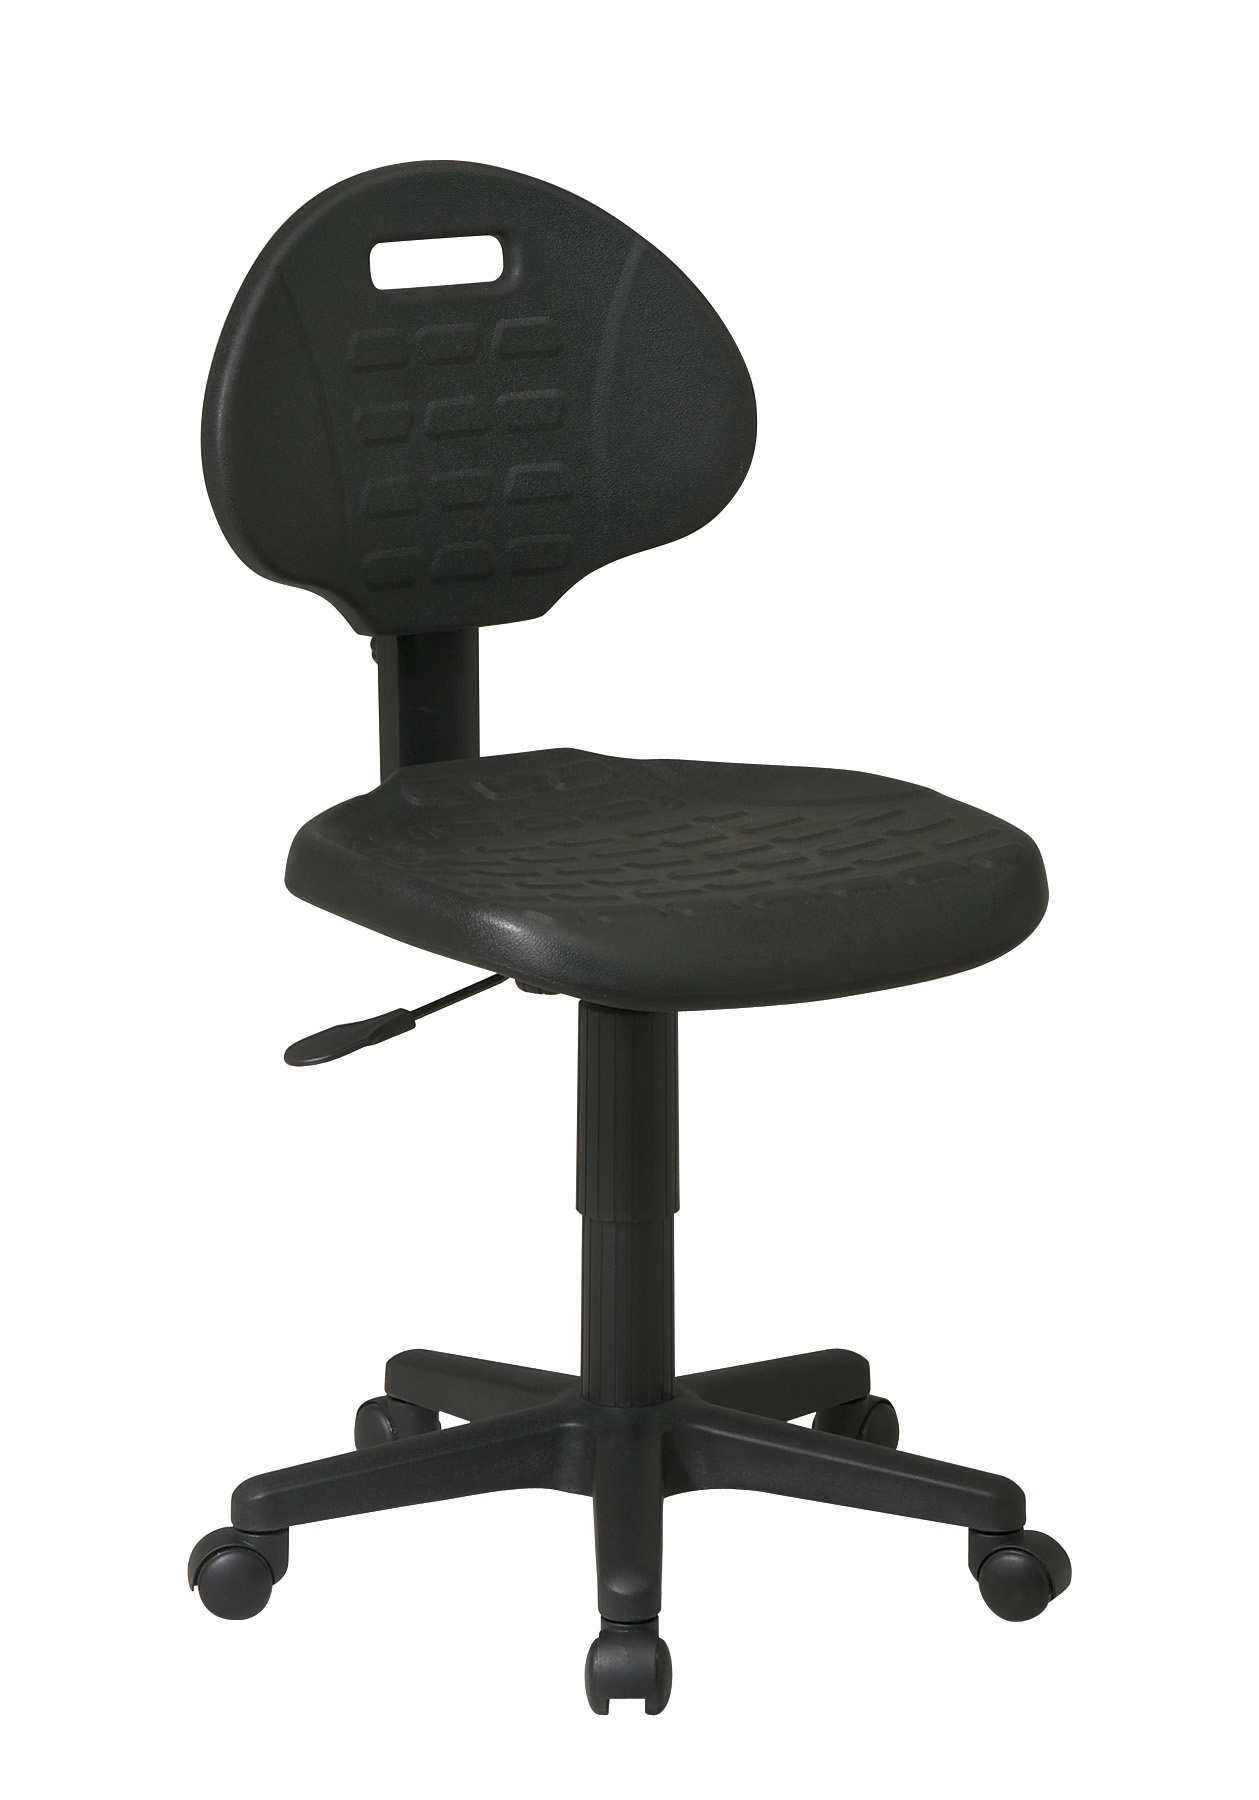 Office Star Task Chair With Heavy Duty Nylon Base By OJ Commerce KH520